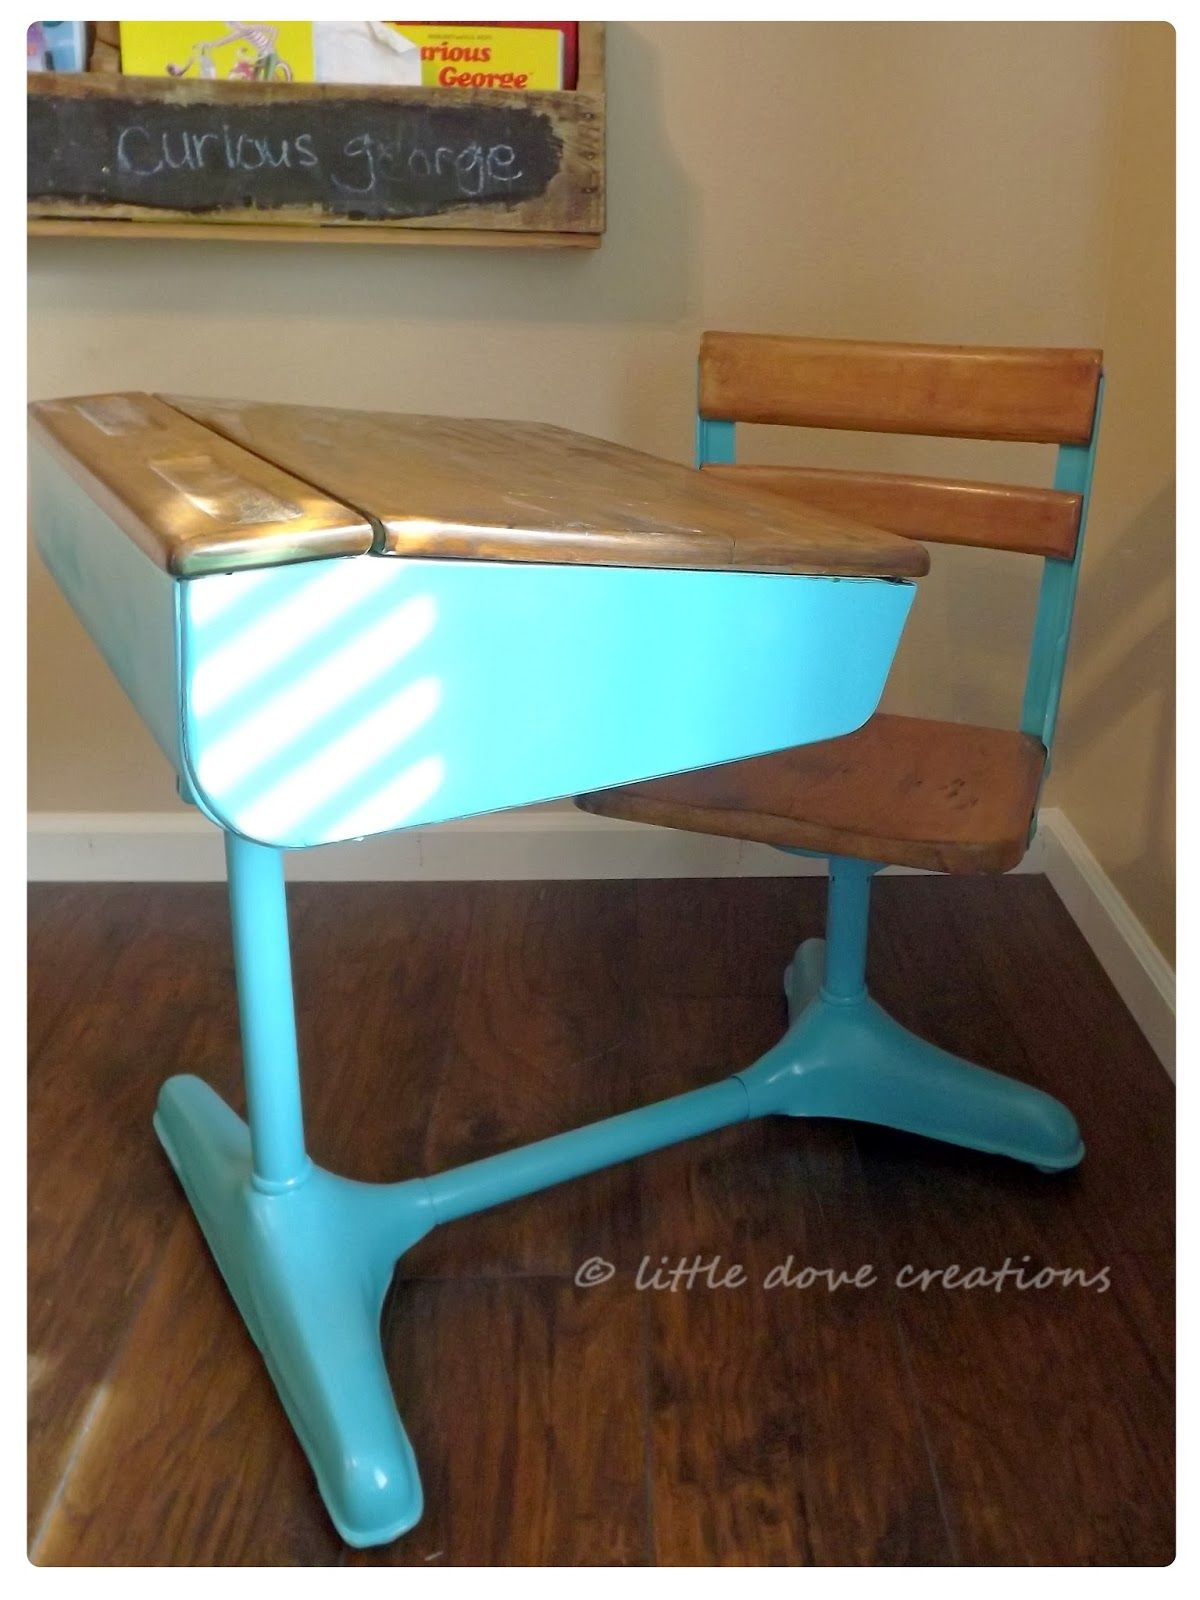 Little Dove Creations Taking It Old School Refinishing A Vintage Desk